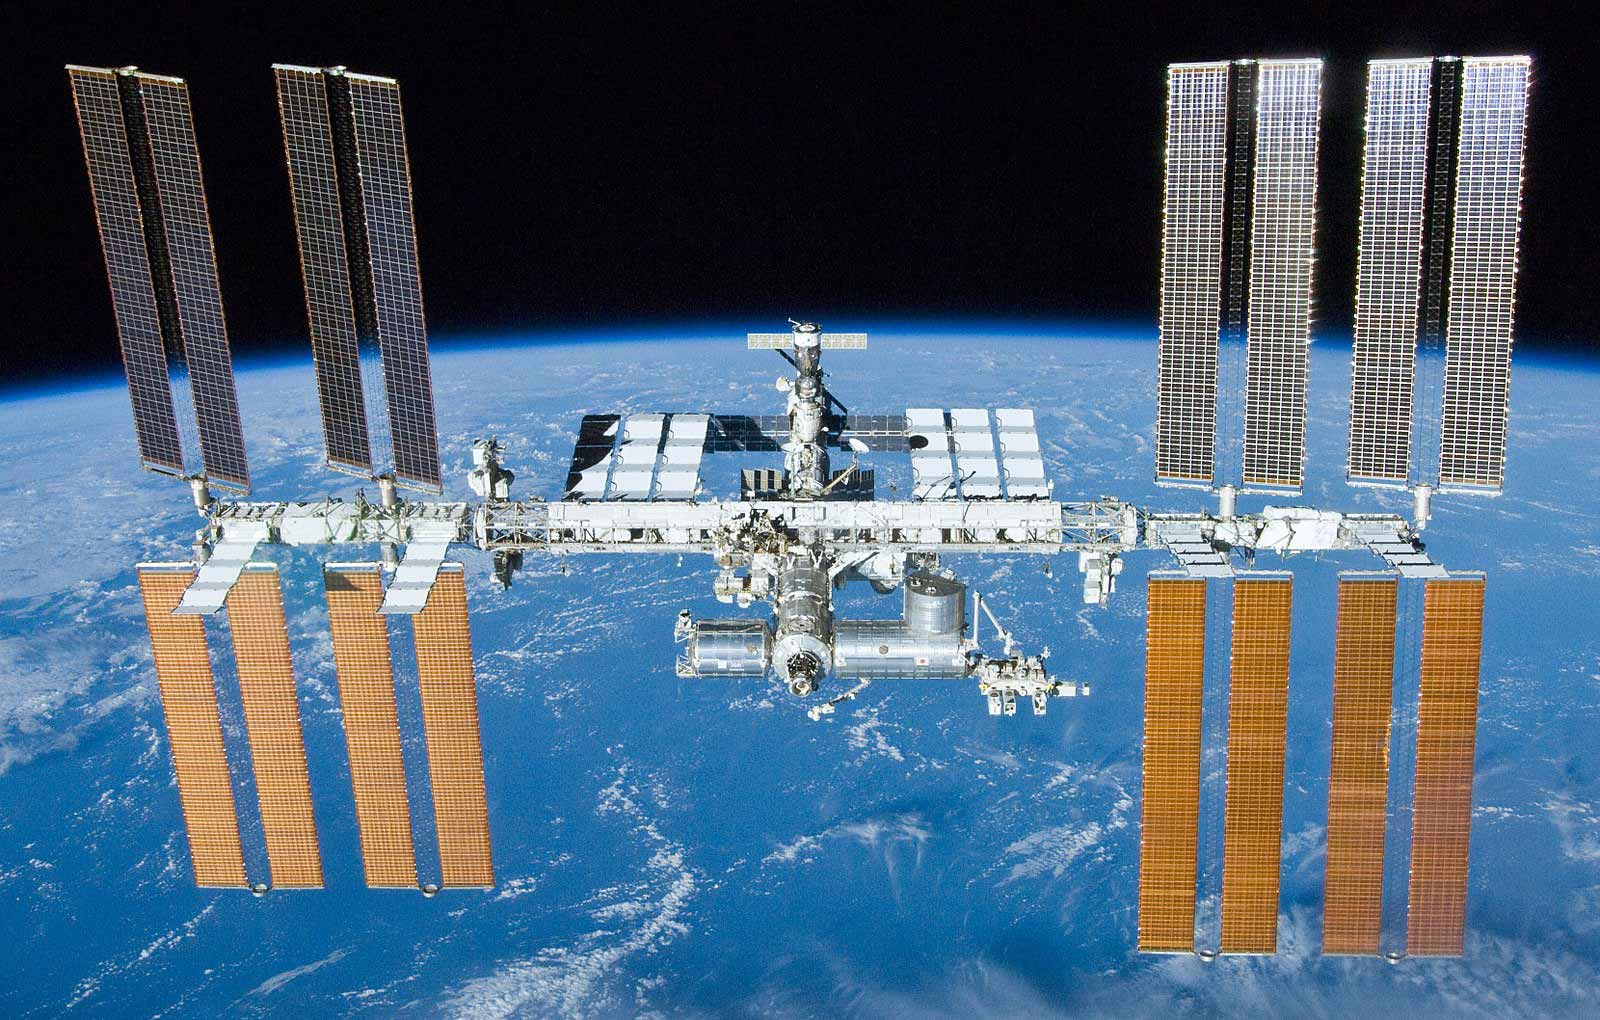 Census of microbial life on the International Space Station